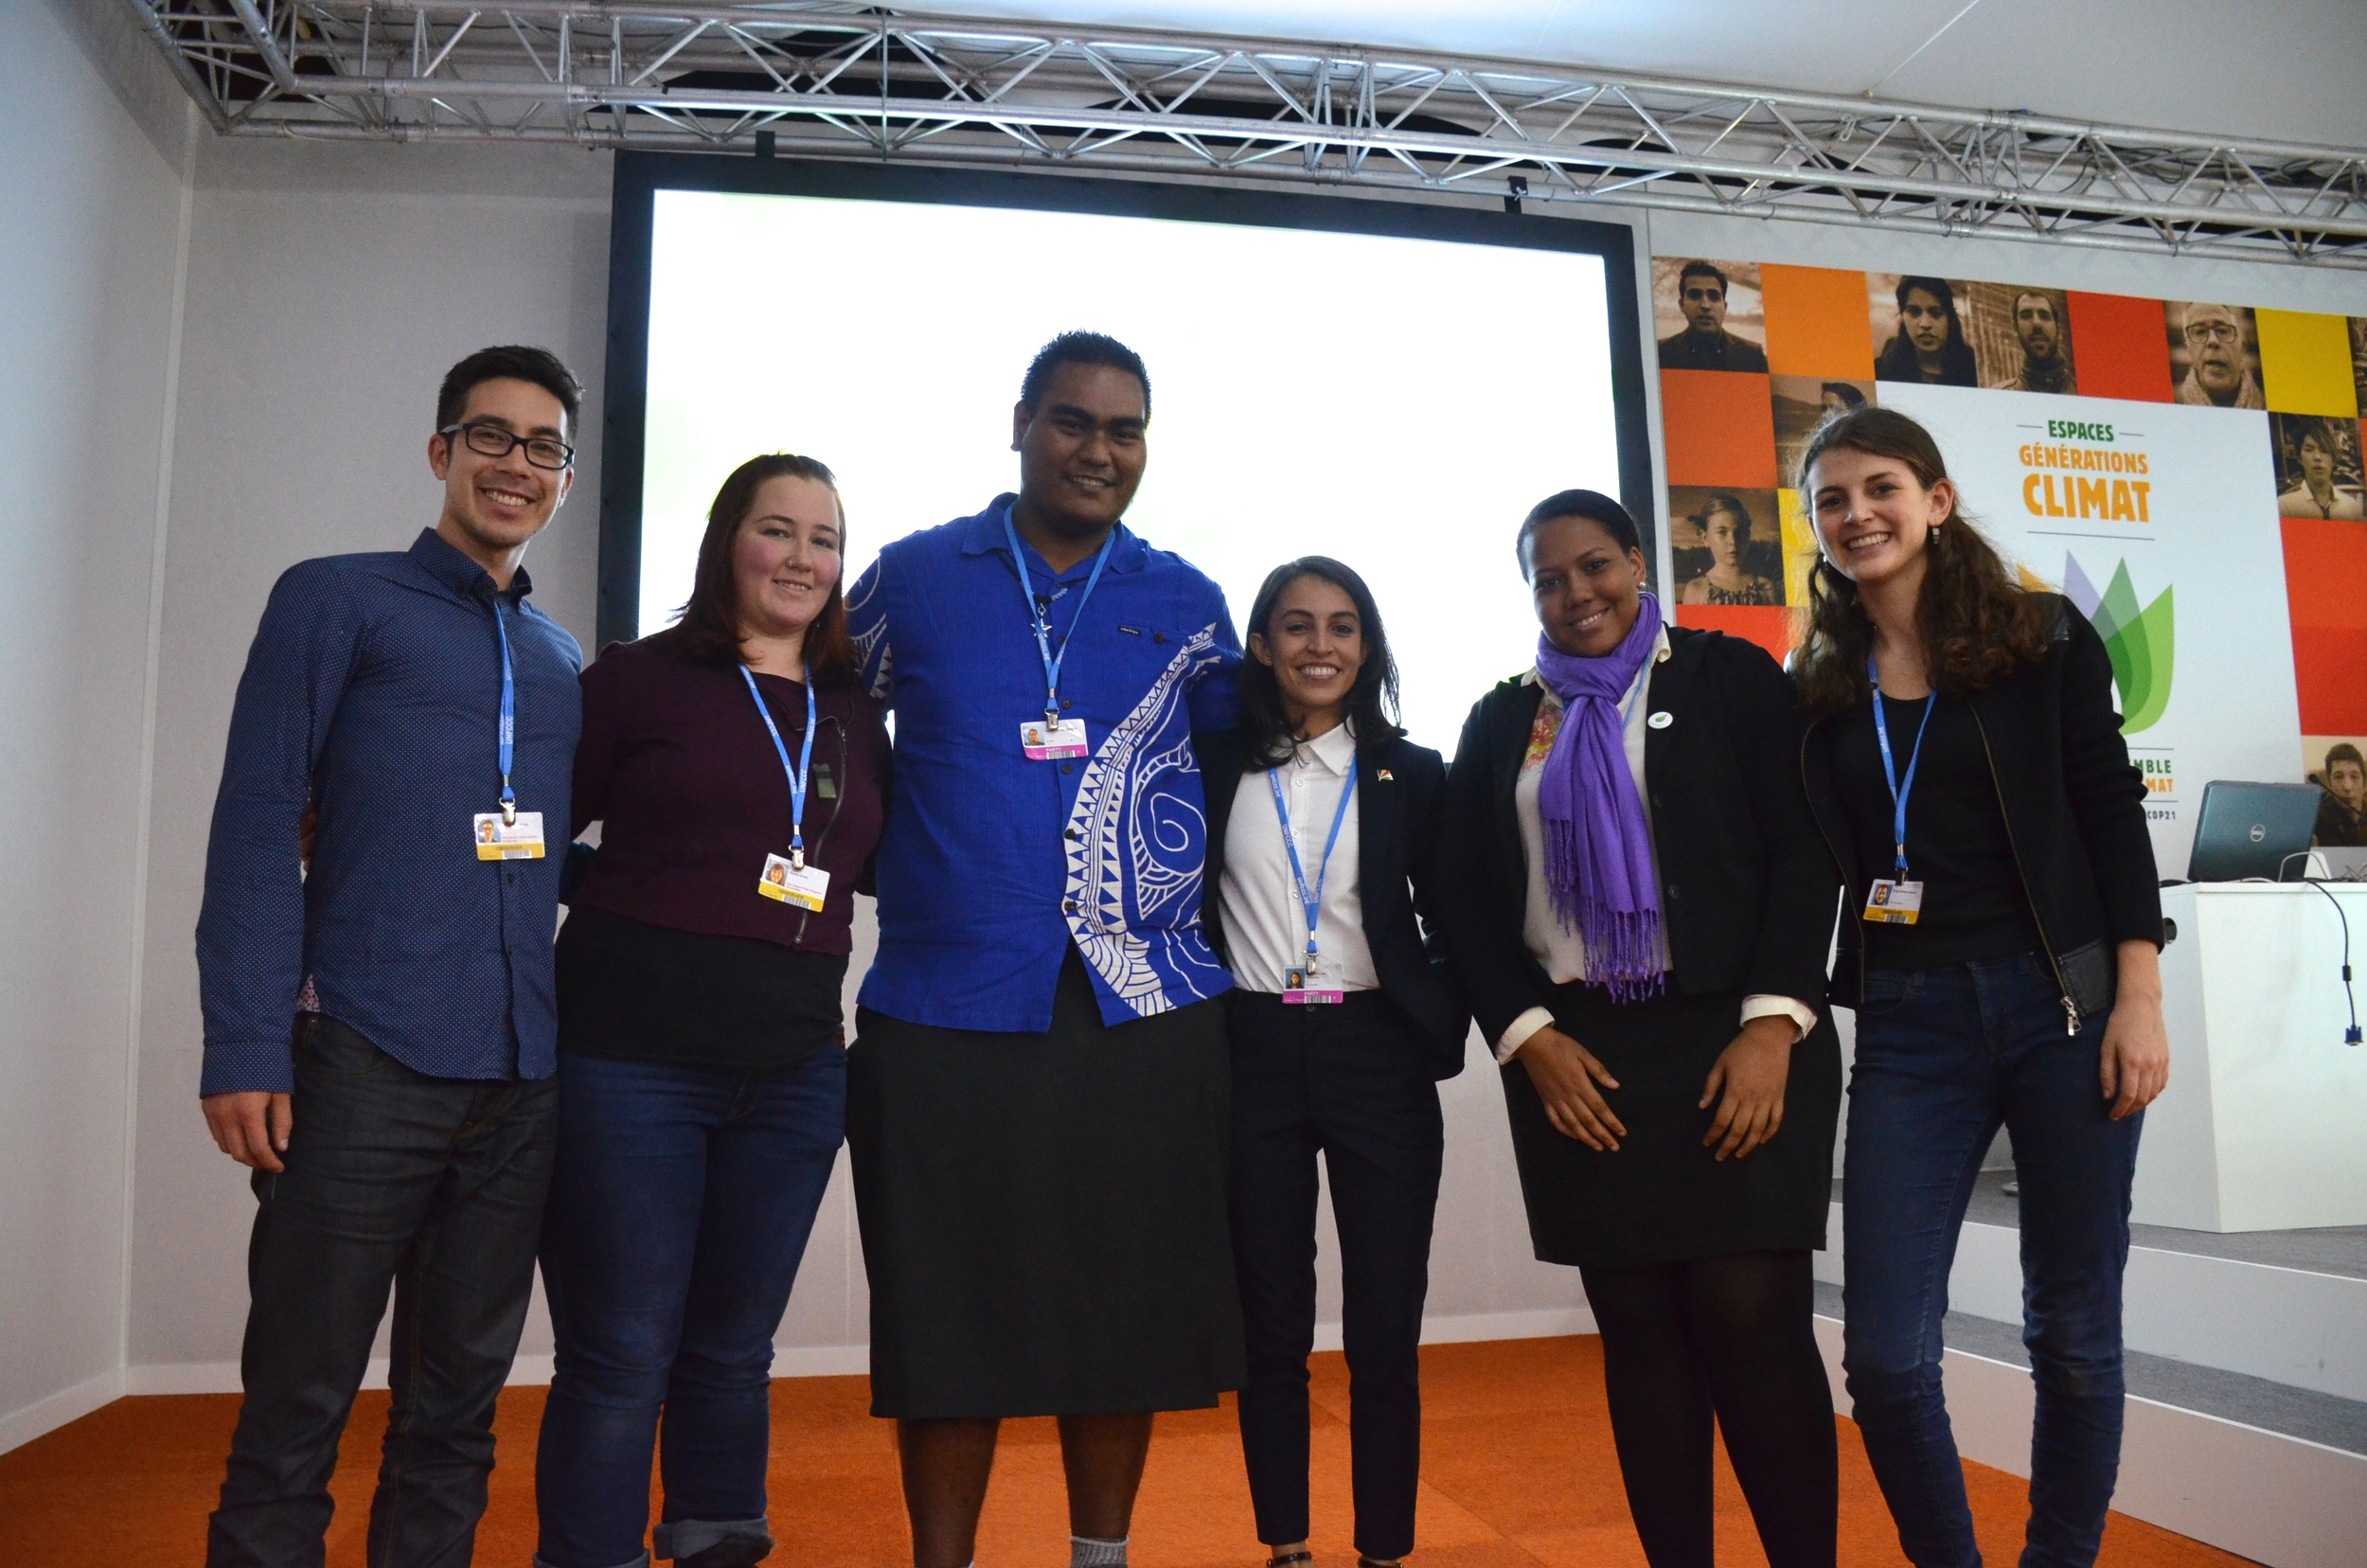 From left to right: New Zealand youth delegates James Young-Drew and Renée Annan, Kiribati Children Campaigner's Network delegate Rae Bainteiti, Seychelles youth delegates Zara Pardiwalla and Lisa Bastienne, and Aotearoa Youth Leadership Institute delegate Mattea Mrkusic